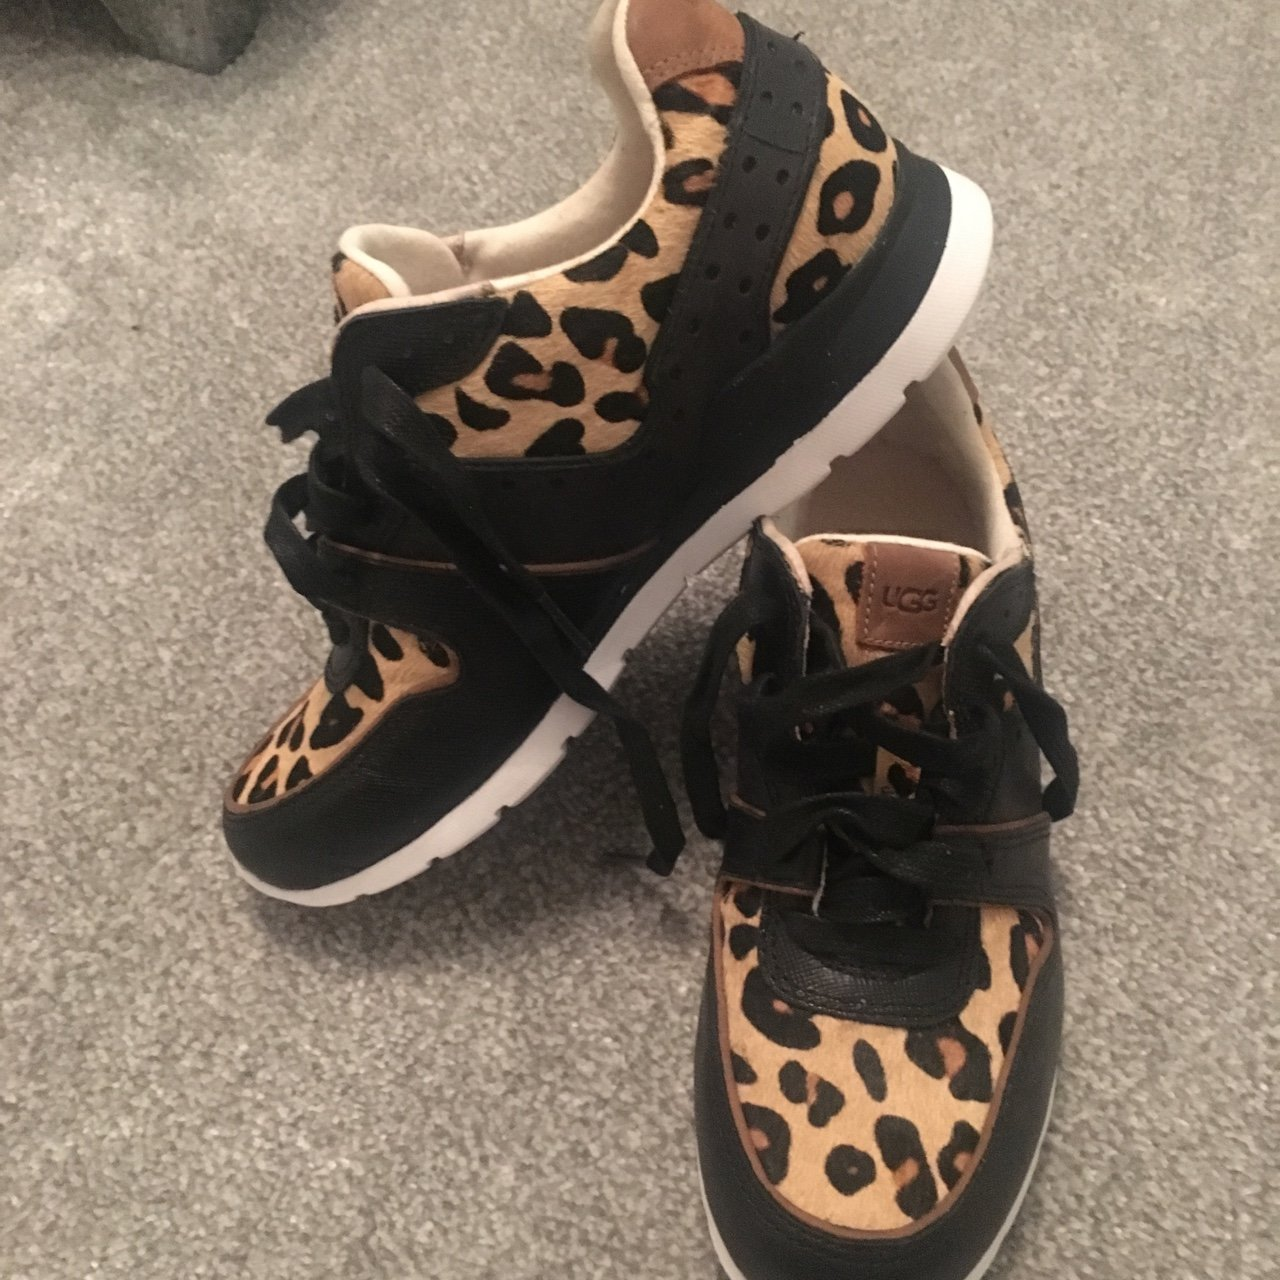 Ugg Leopard Print Trainers, new without